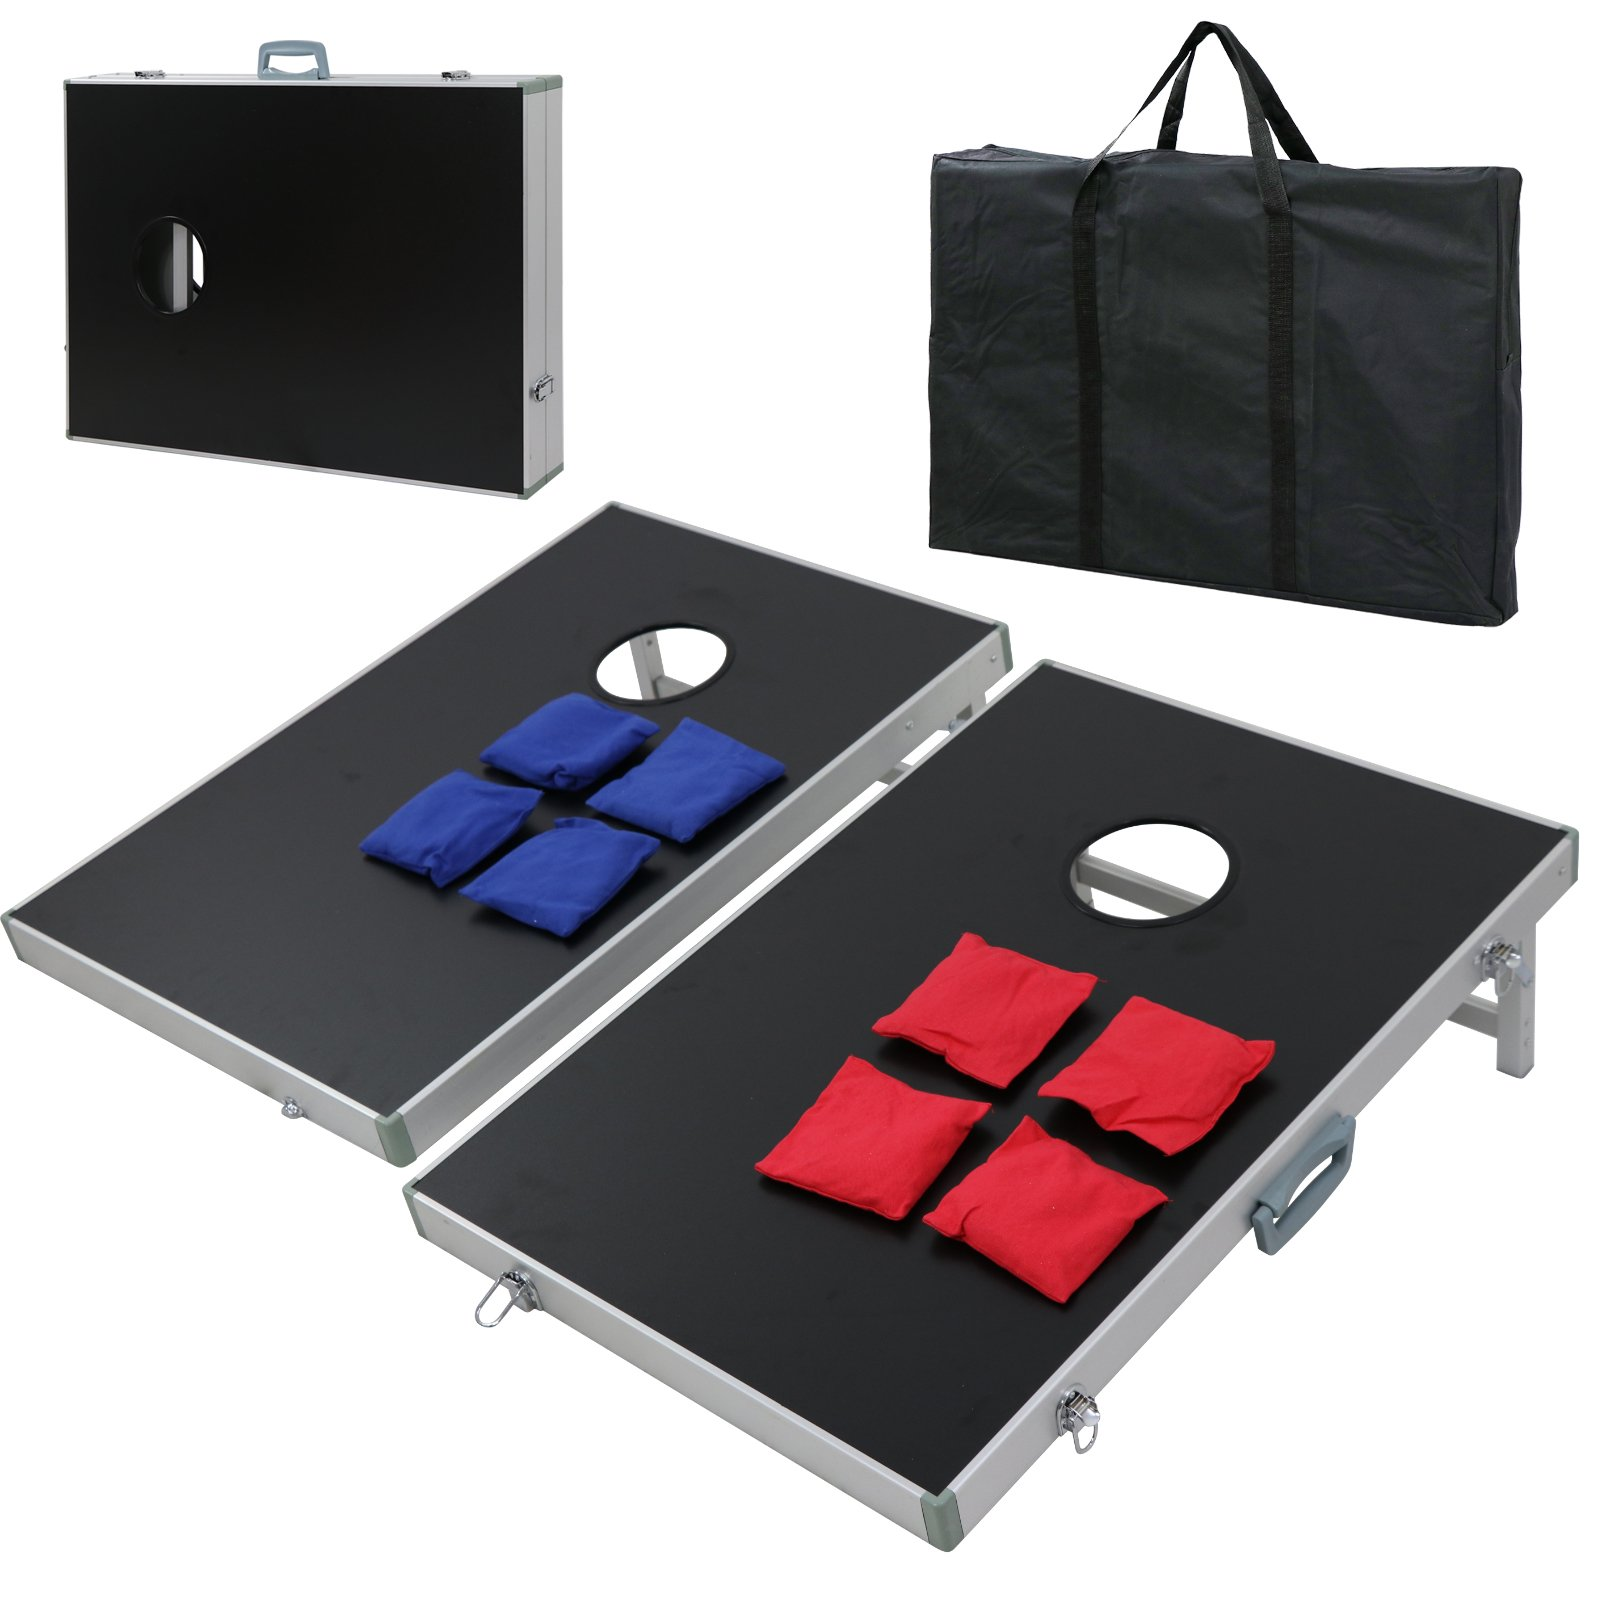 ZENY Portable 3' x 2' Cornhole Game Set, Folding Aluminum Frame MDF Cornhole Board w/ 8 Weighted Bean Bags and Carrying Case for Portable and Lightweight for Party Backyard BBQ Beach Travel by ZENY